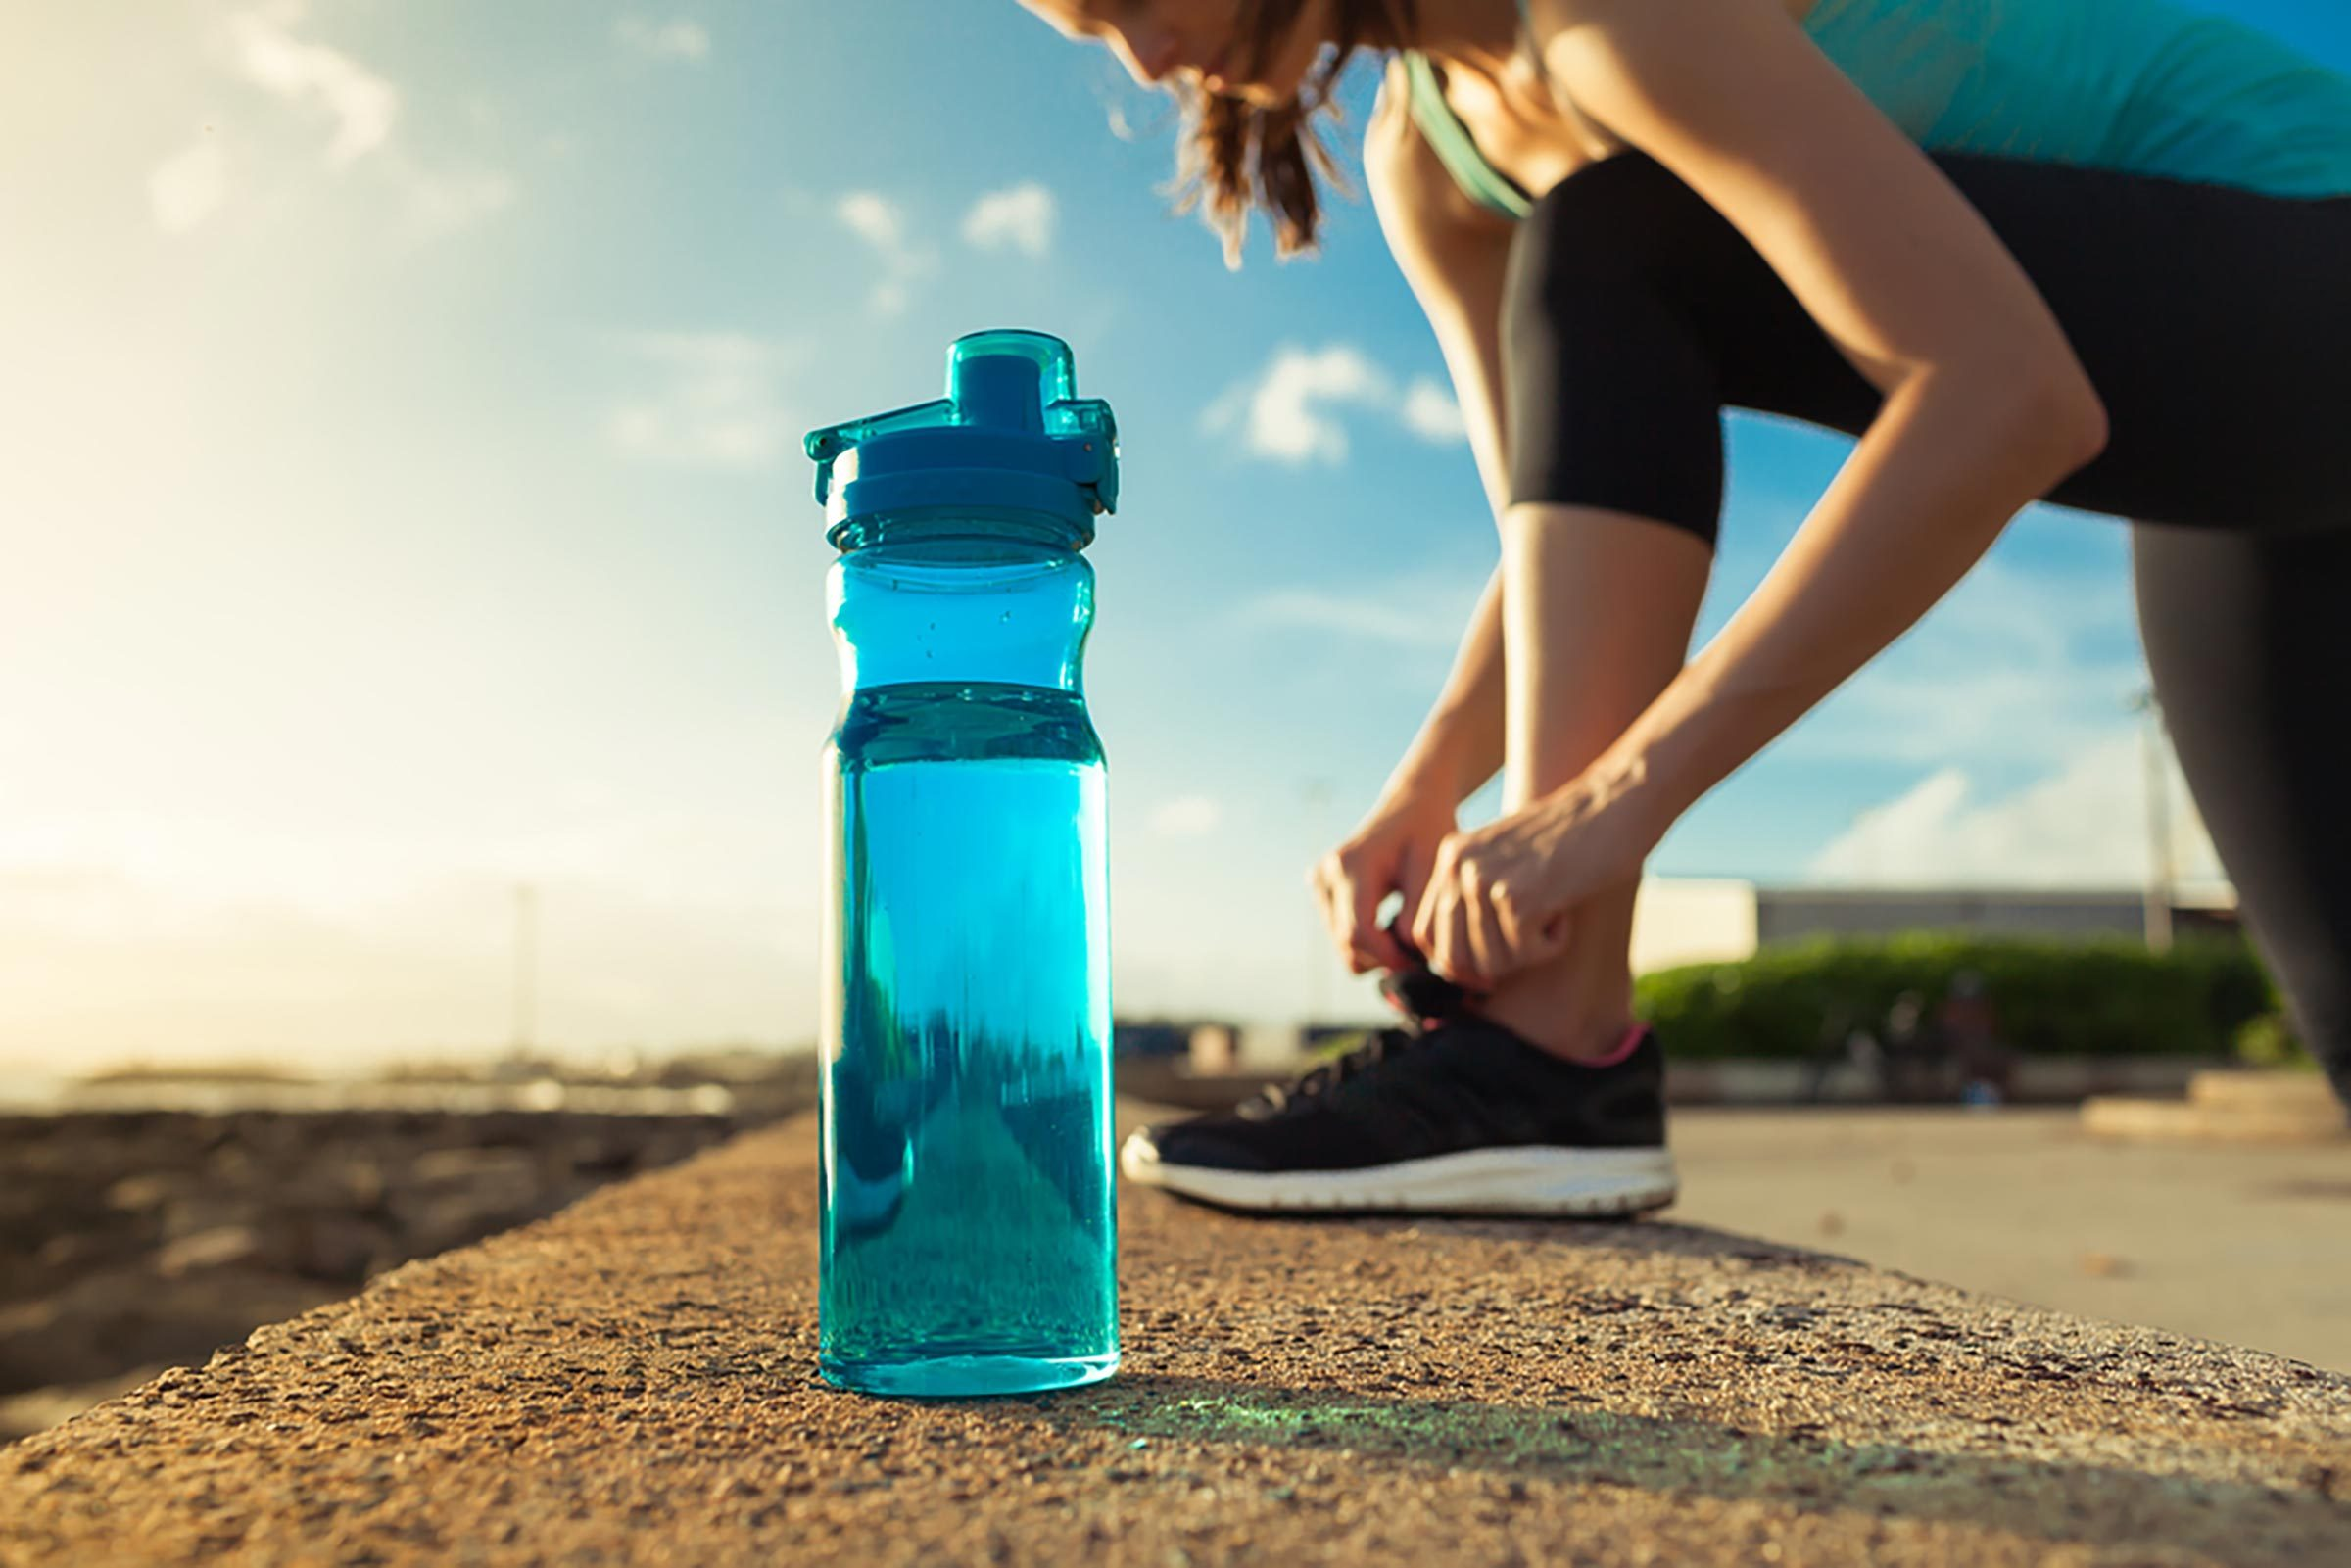 Woman runner tying sneaker next to bottle of water